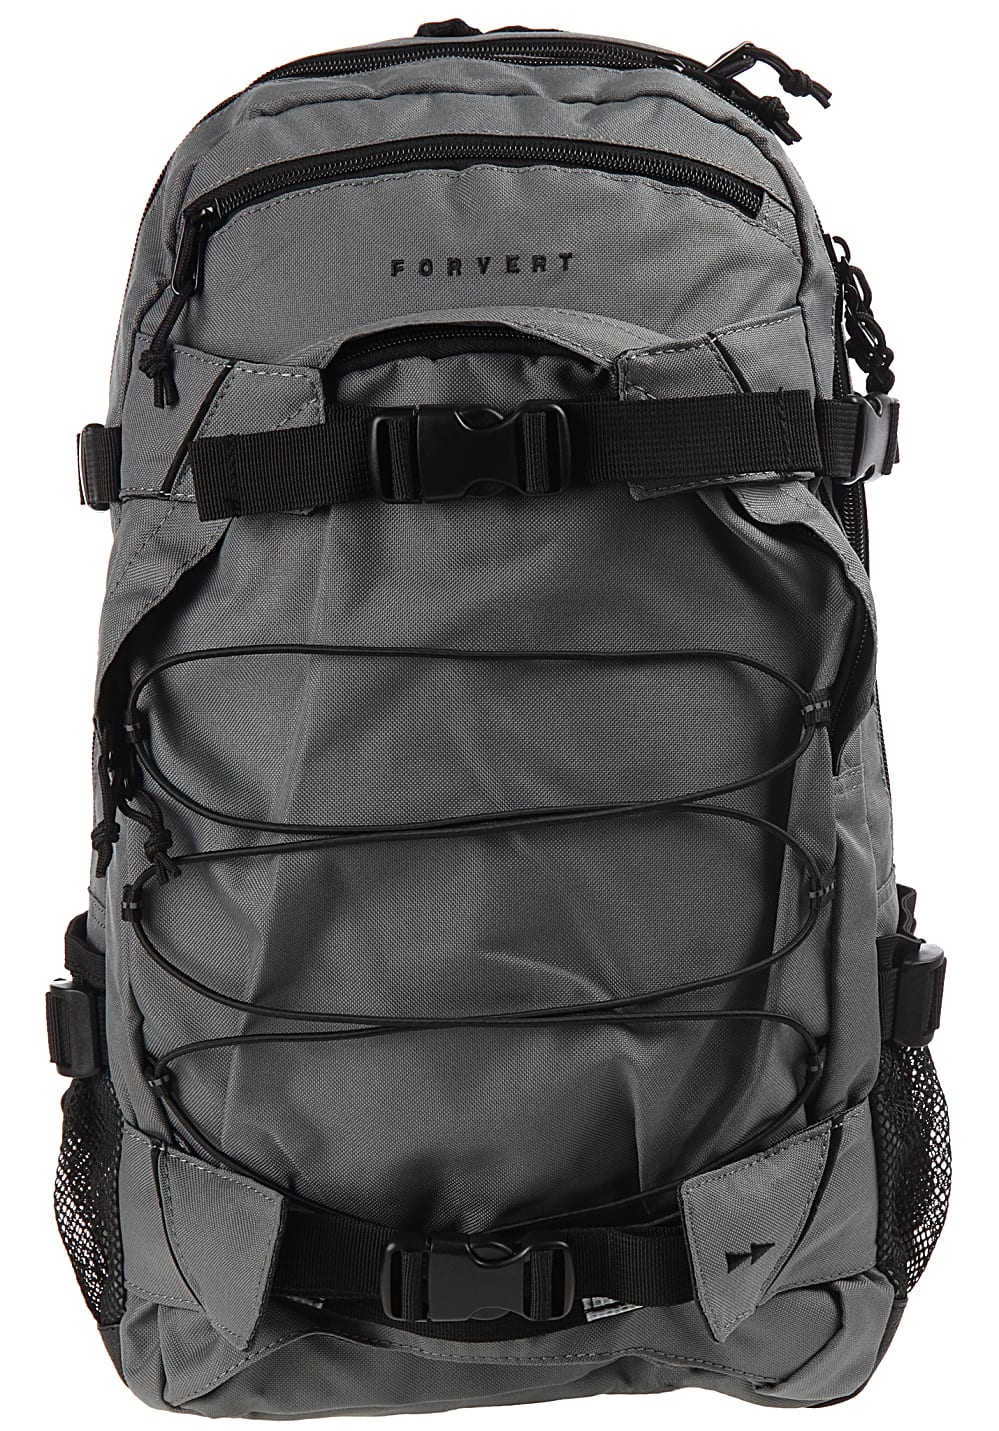 Forvert Laptop Louis 25L Laptoprucksack - Grau